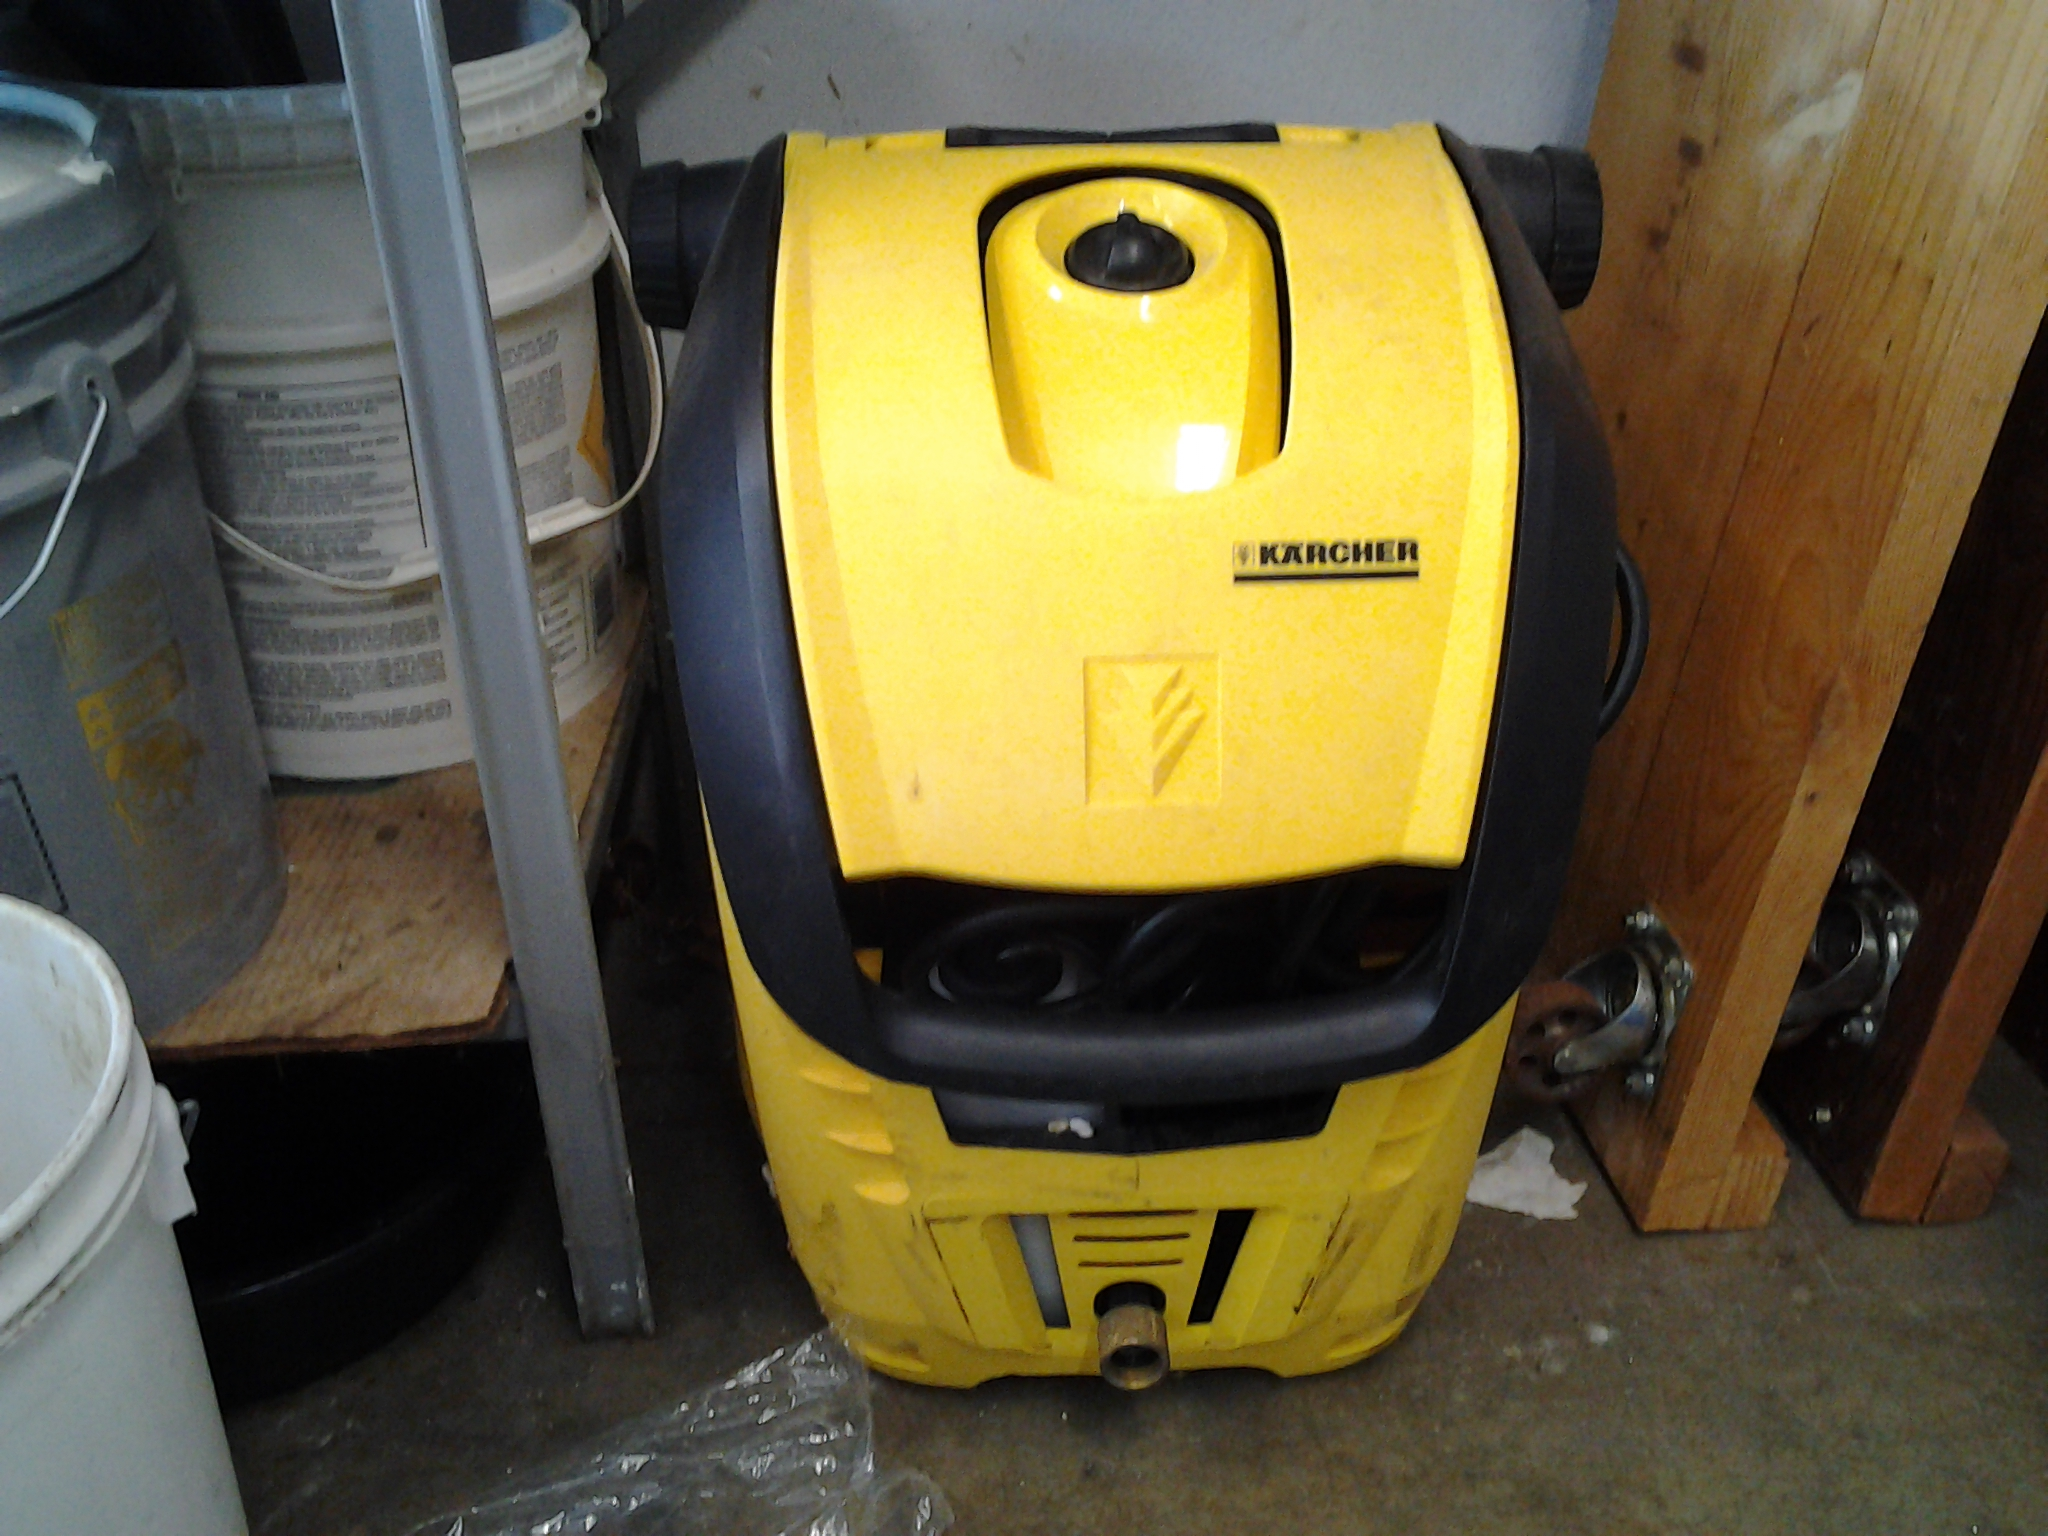 Loanables Karcher Rental Located In Peoria Il